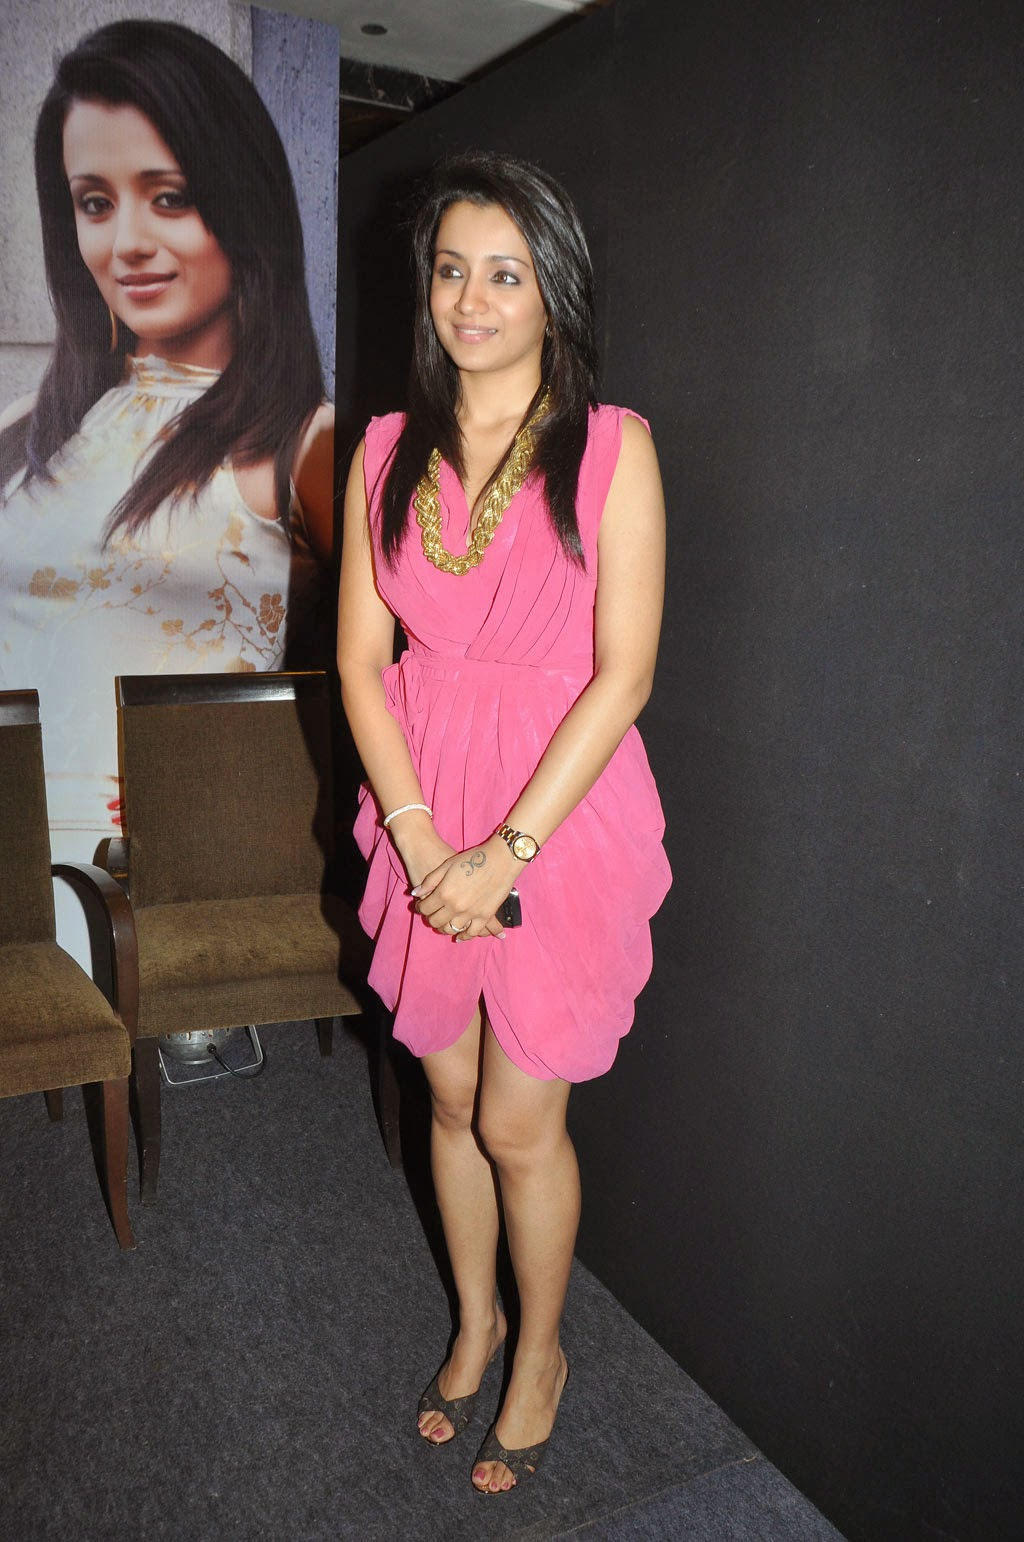 trisha latest hot wallpaper mini skirt